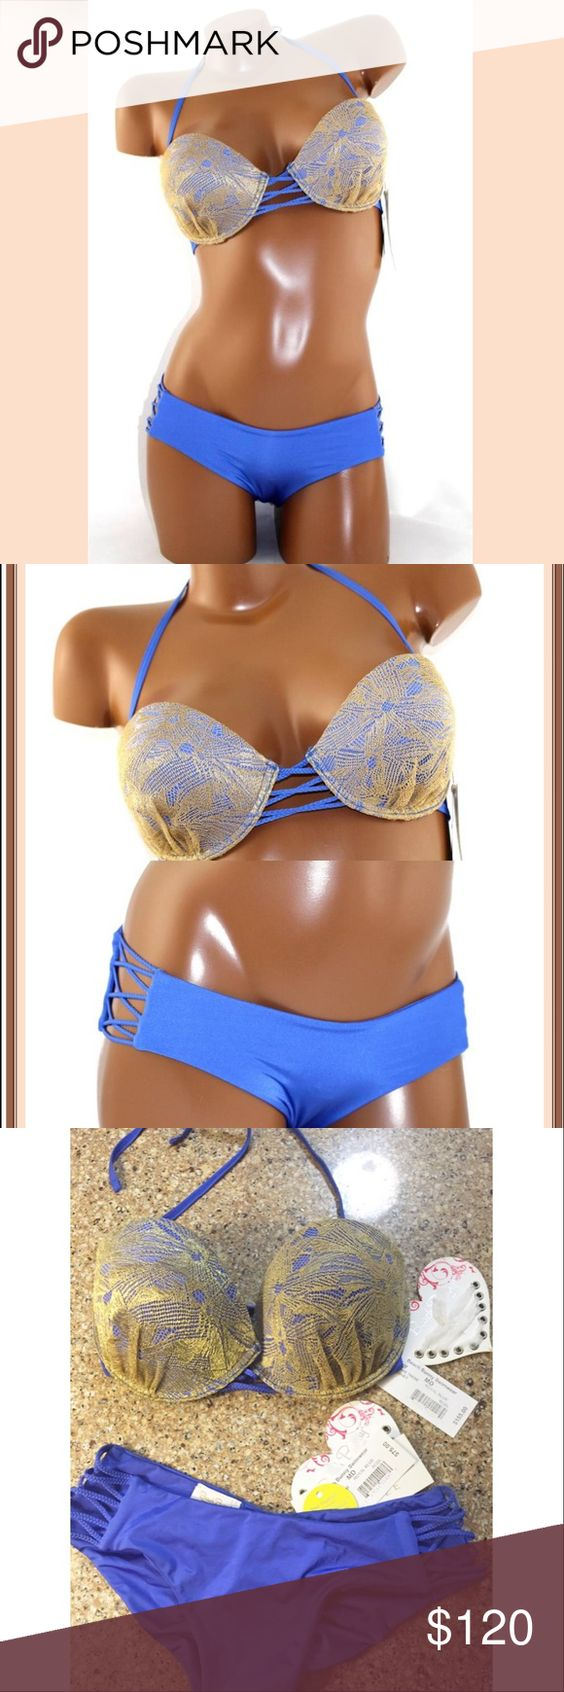 Beach bunny NWT take me there blue scrunch bikini This stunning bikini is such a pretty color in person! It has push-up style top with hipster style Brazilian and has added scrunch butt. Brand new with tags and lined! Size medium top and bottom. Beach Bunny Swim Bikinis